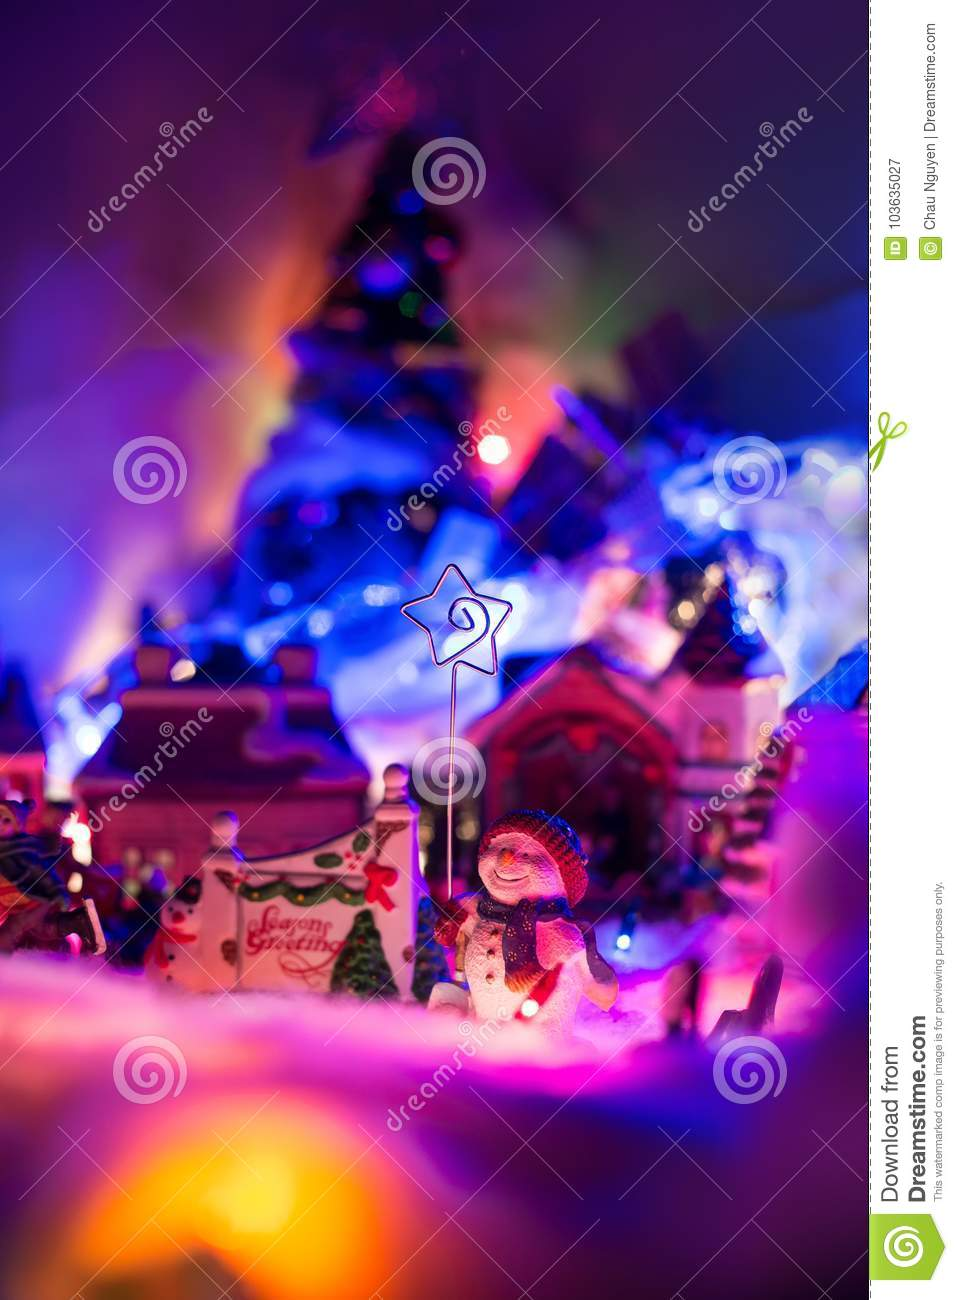 seasons greeting sign with smiling snowman holding star of bethlehem stands in front of a christmas